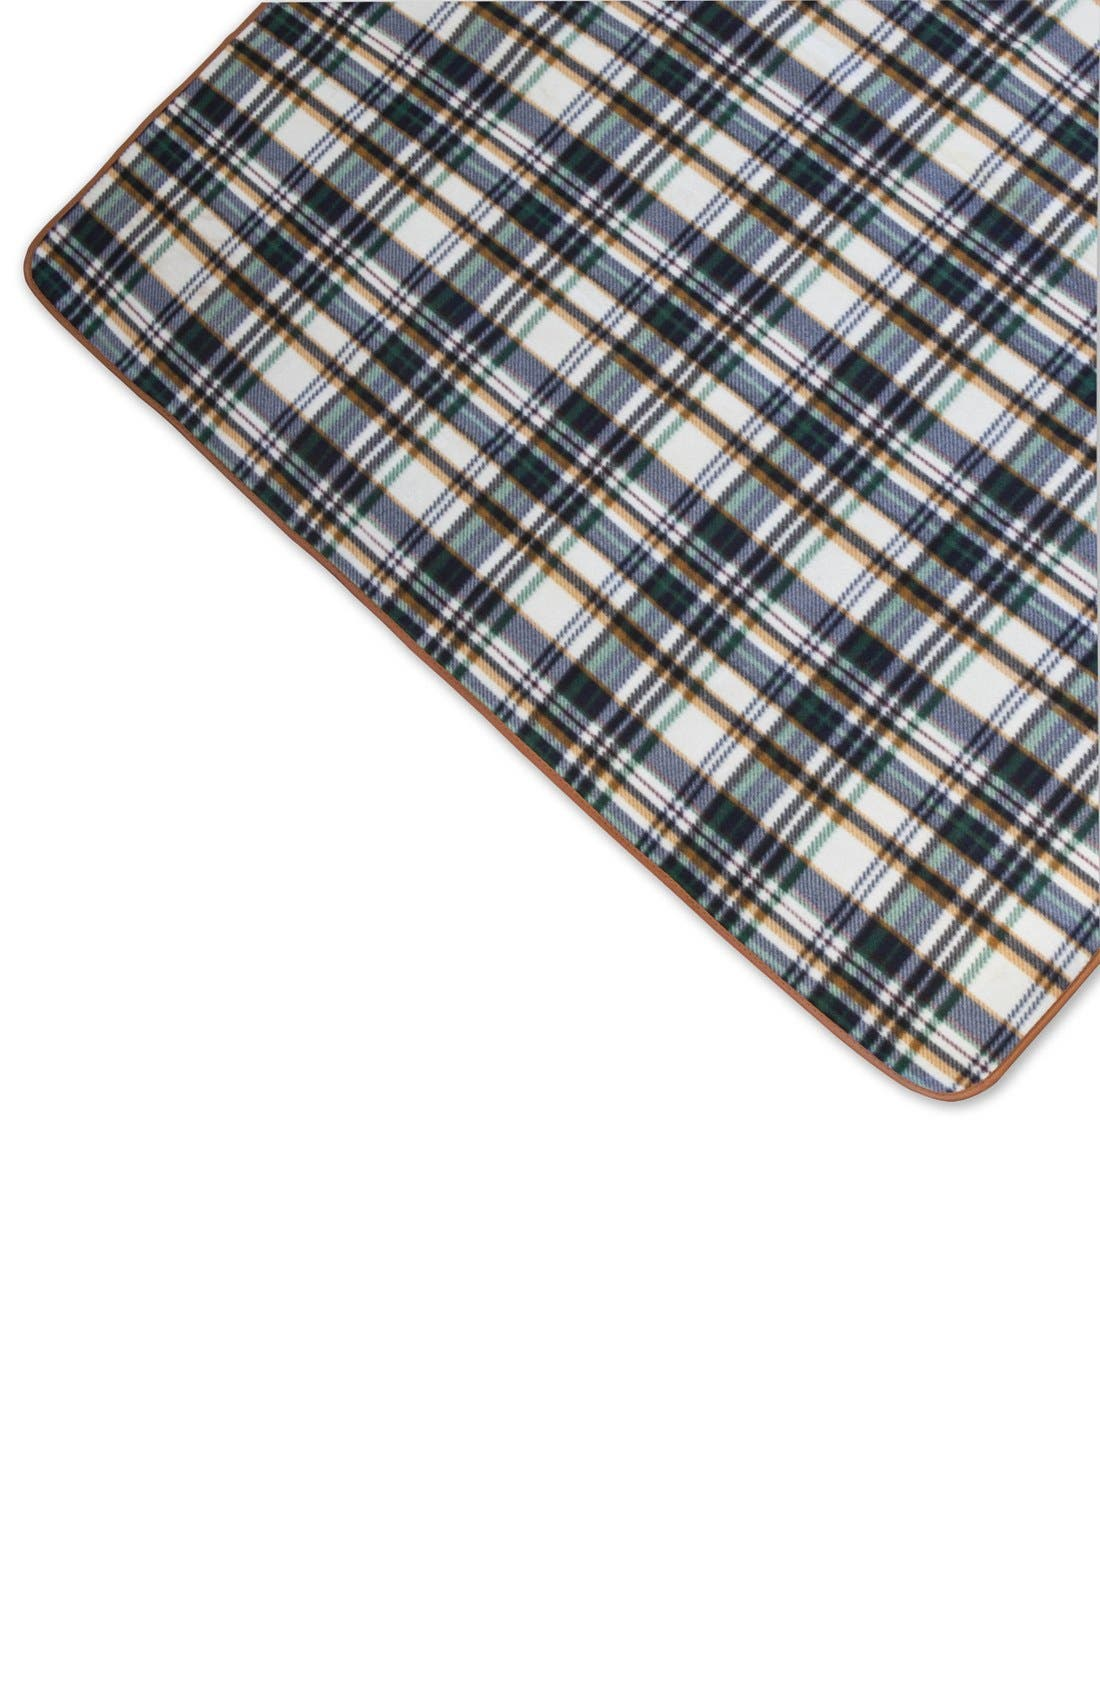 'English Plaid XL' Fold-Up Blanket Tote,                             Alternate thumbnail 3, color,                             BROWN